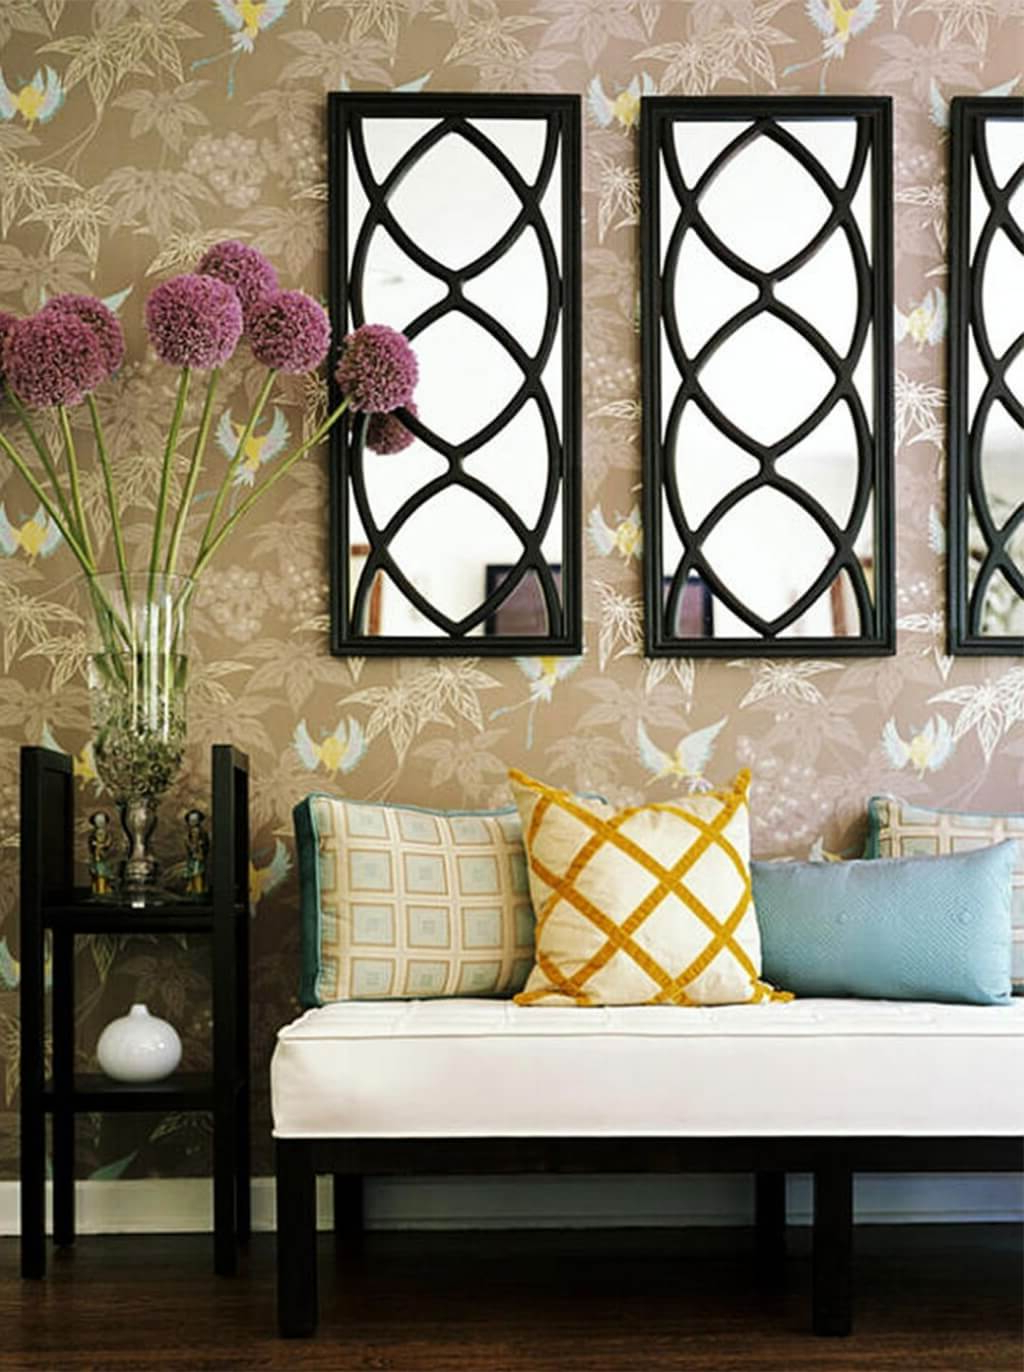 Widely Used Decorative Wall Mirrors For Living Room Frame : Perfect Decorative For Cheap Decorative Wall Mirrors (View 17 of 20)